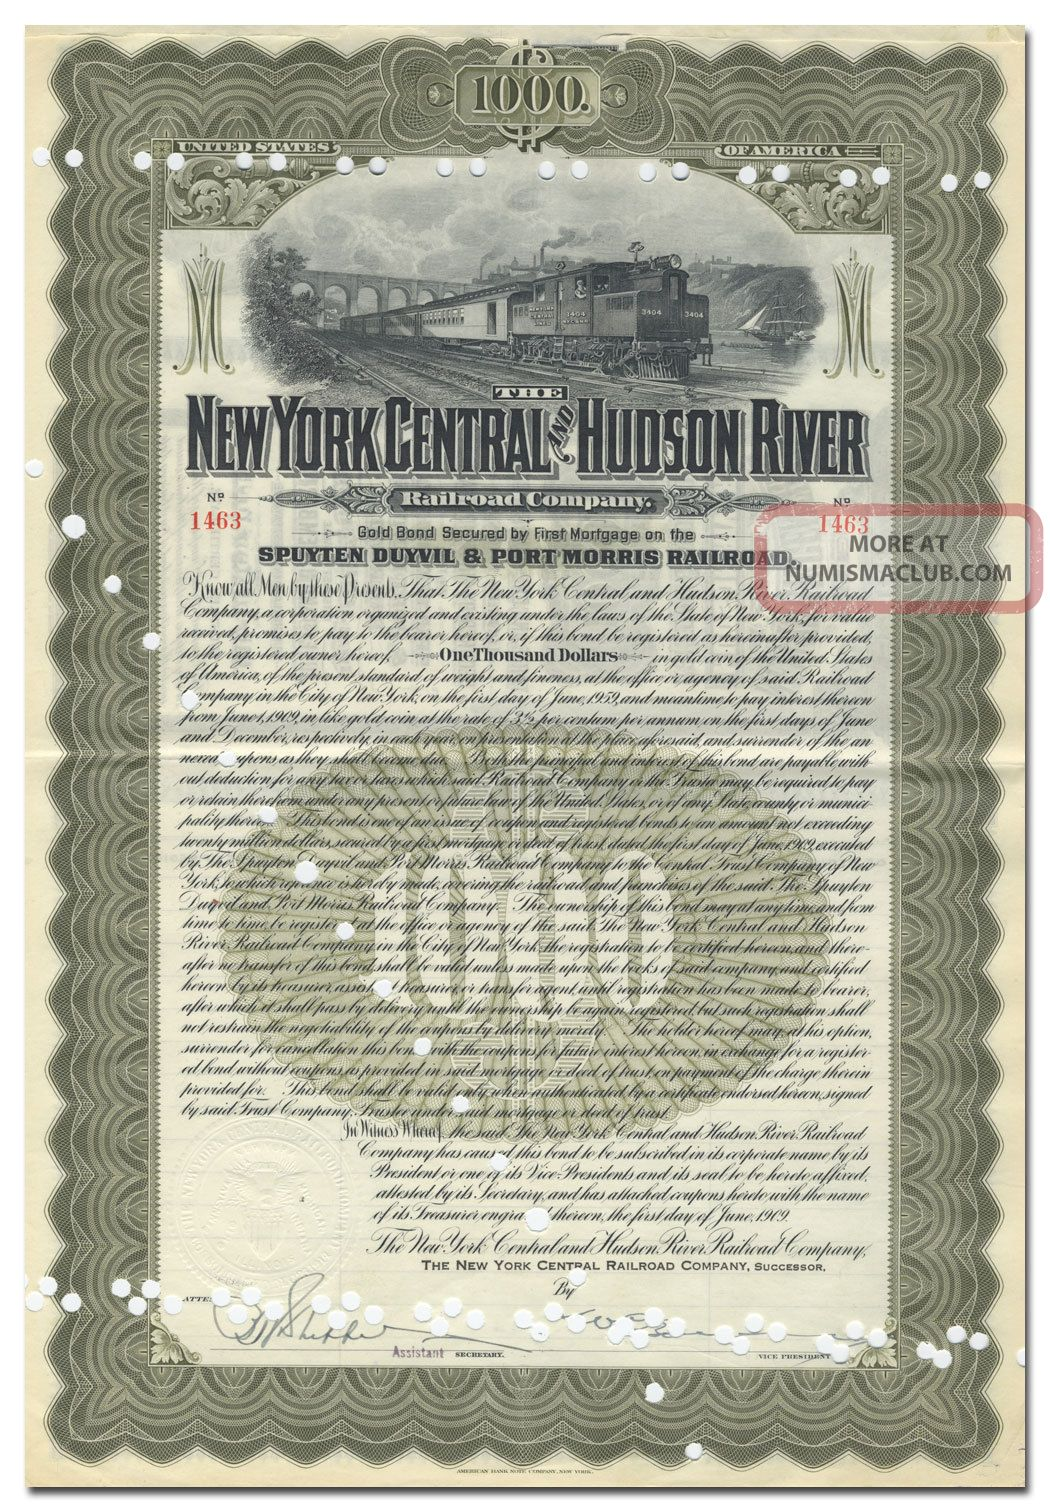 York Central & Hudson River Rr Co.  Bond Certificate (spuyten Duyvil Branch) Transportation photo